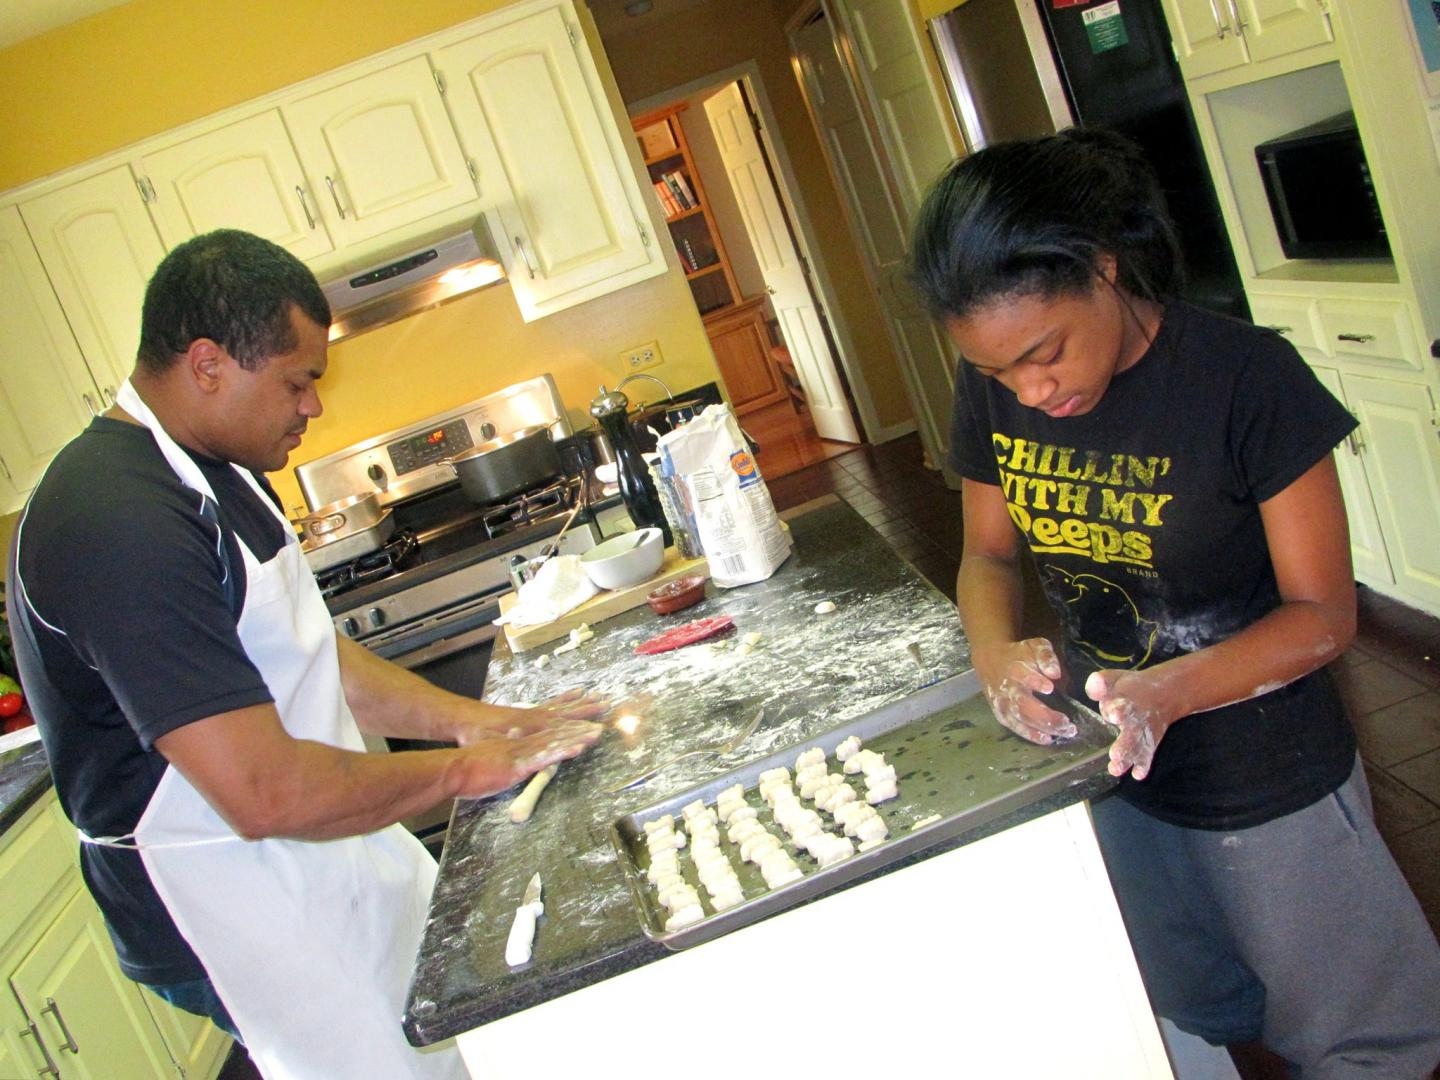 Chef Mychael and his daughter cooking